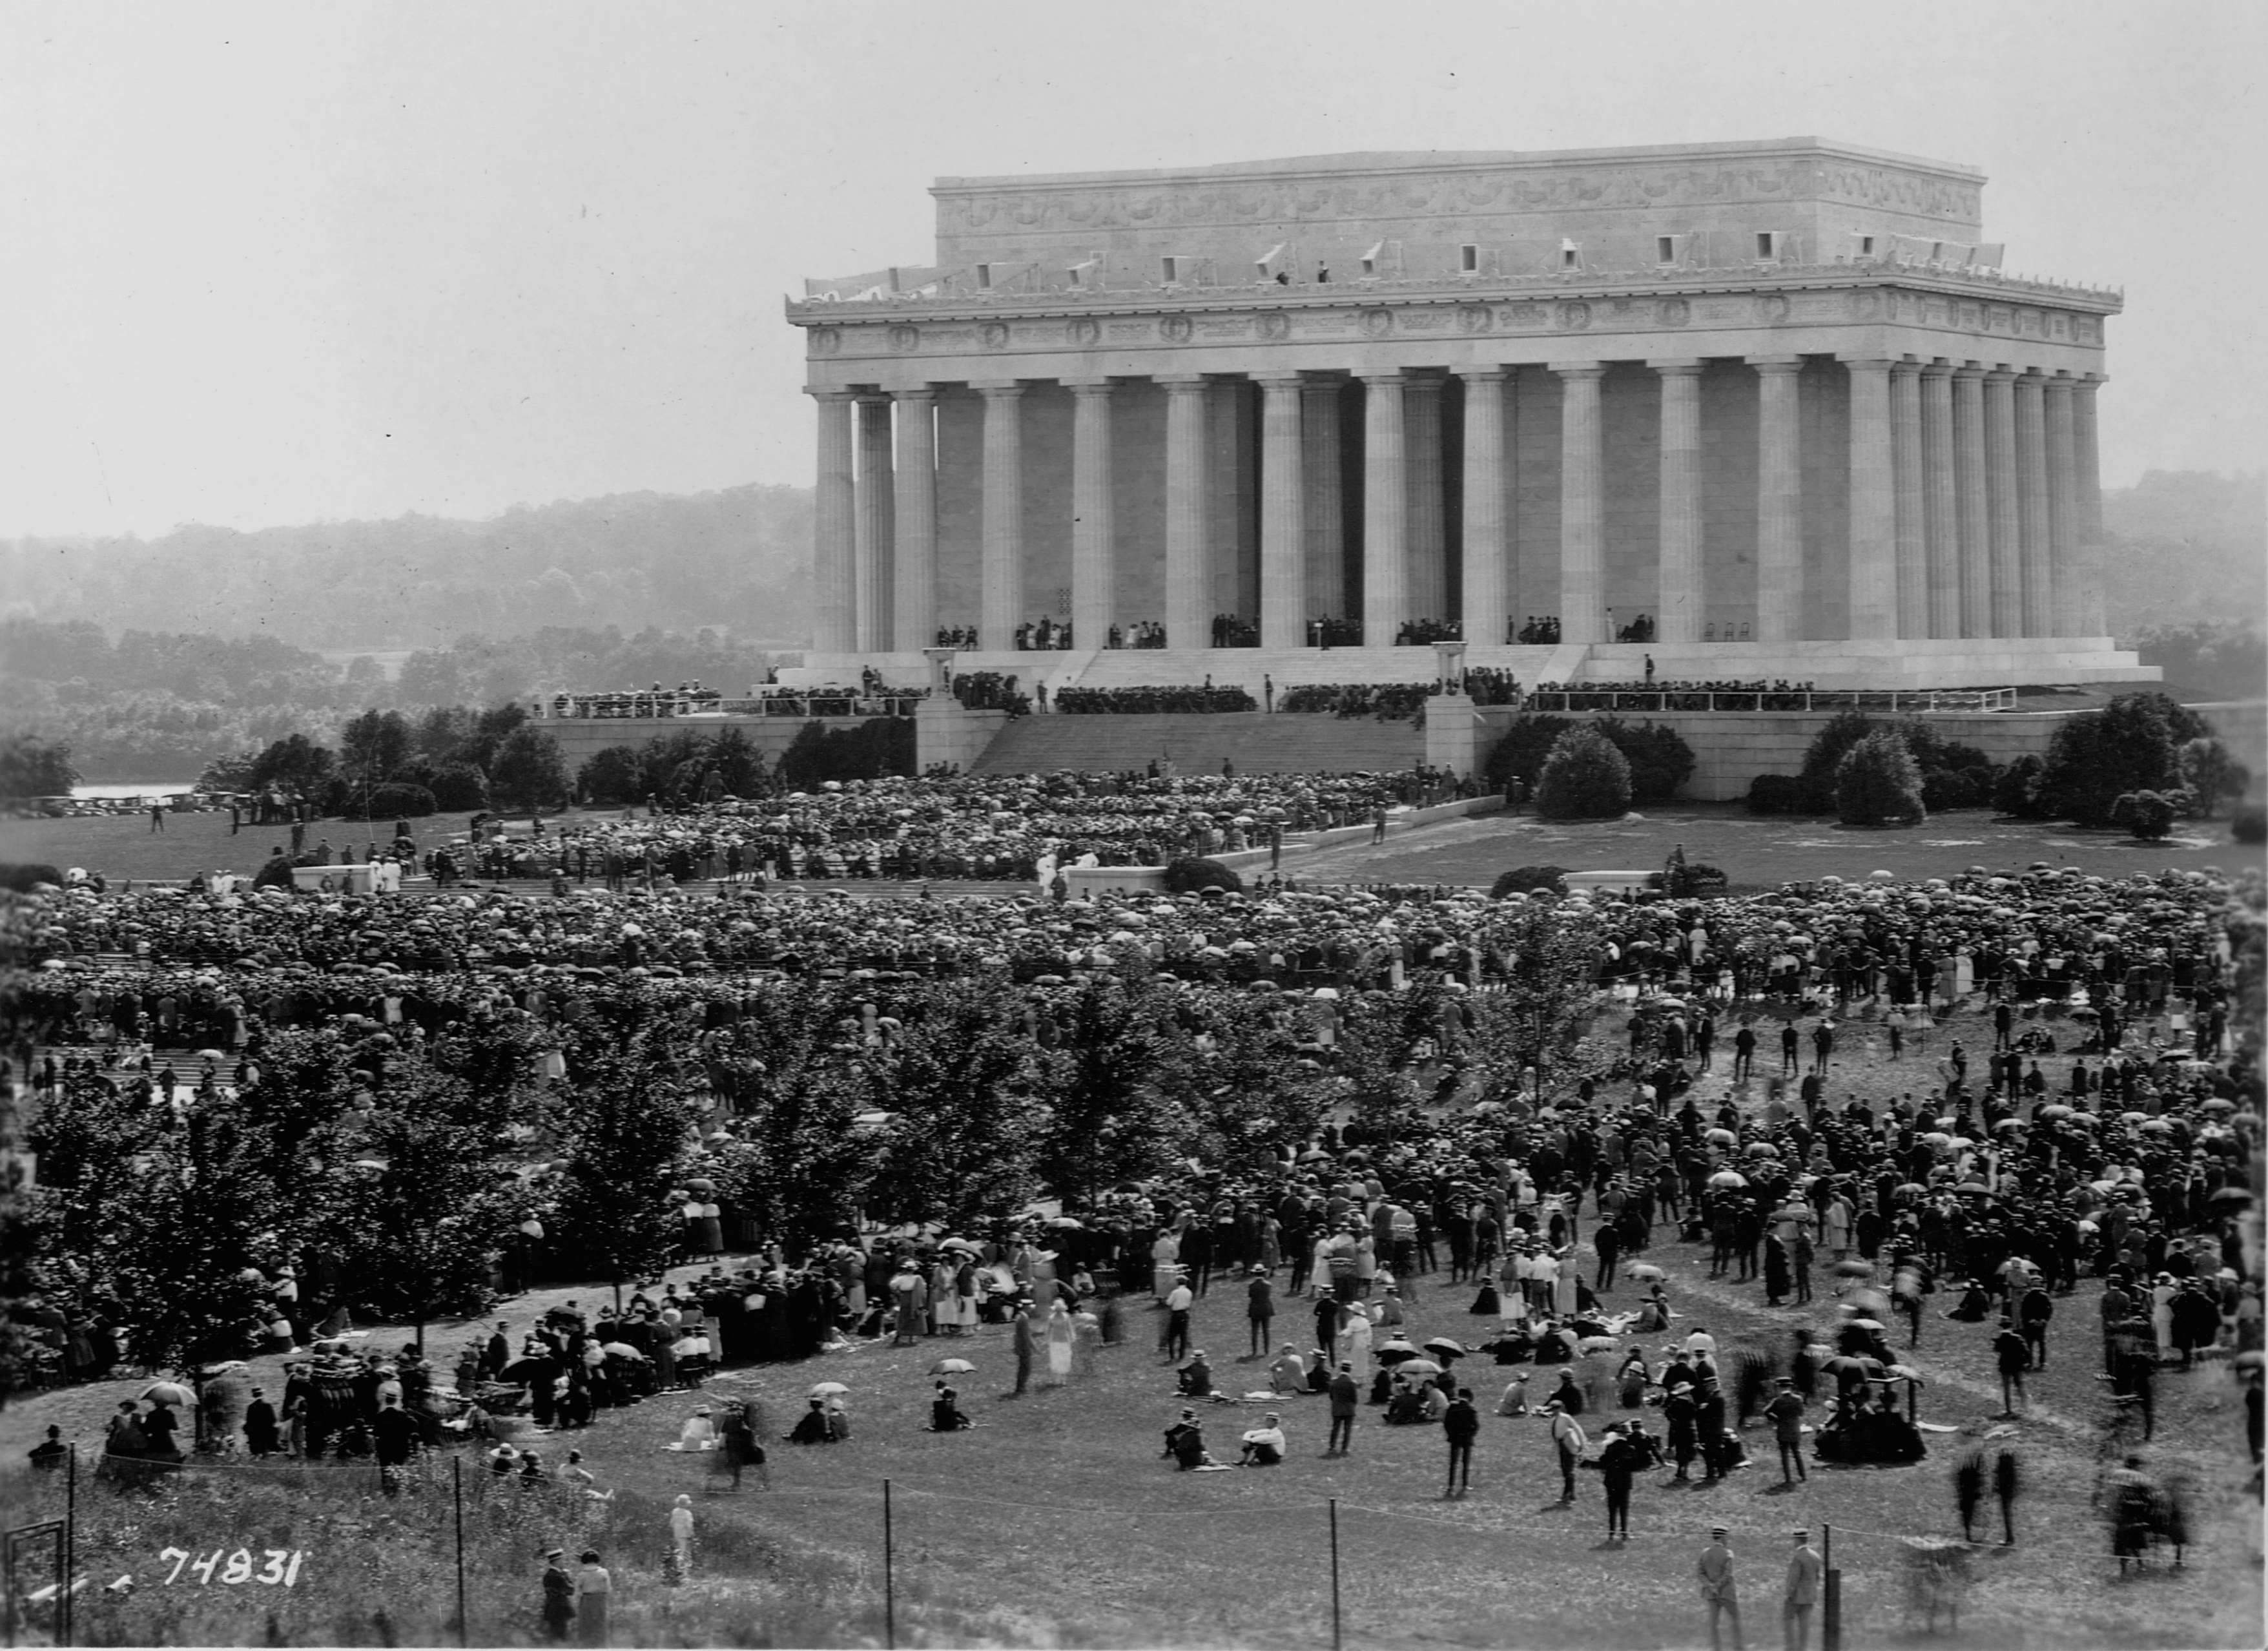 Slide 28 of 55: A crowd gathers for the dedication ceremony of the Lincoln Memorial on May 30, 1922 to the 16th President of the United States, Abraham Lincoln. (Photo by Library of Congress/Corbis/VCG via Getty Images)